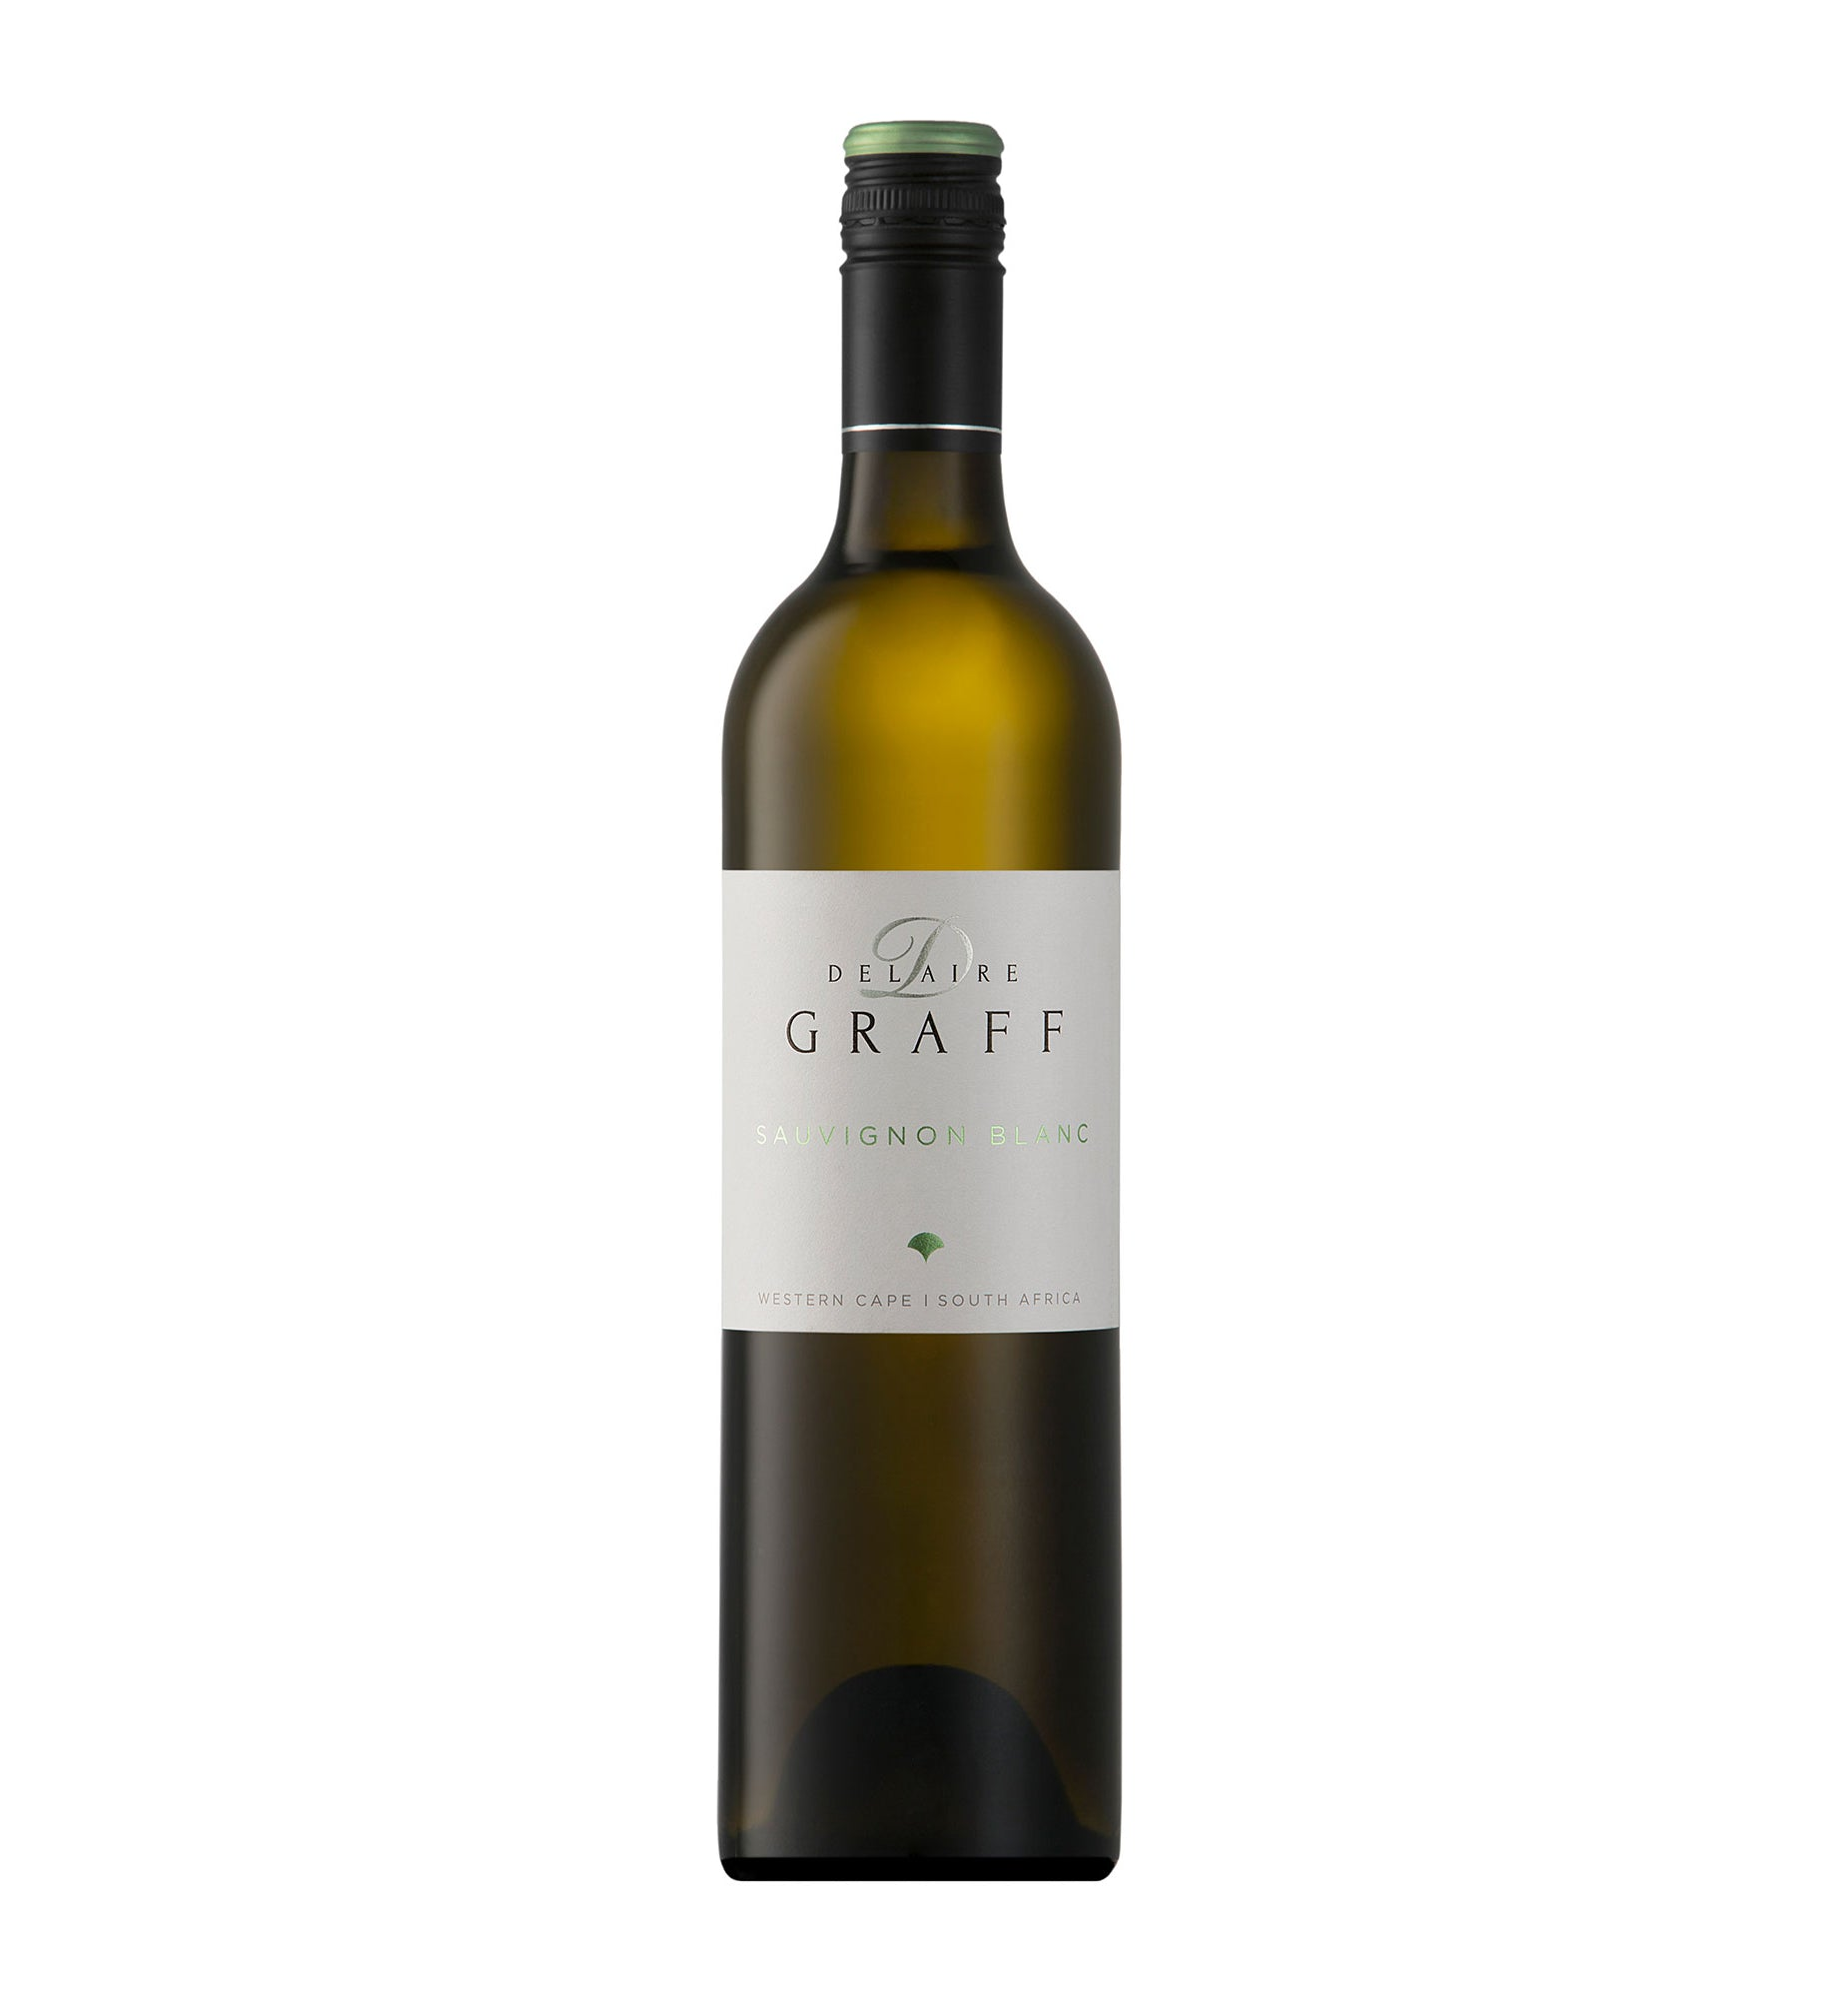 Buy white wine sauvignon blanc in South Africa from Delaire Graff Estate.